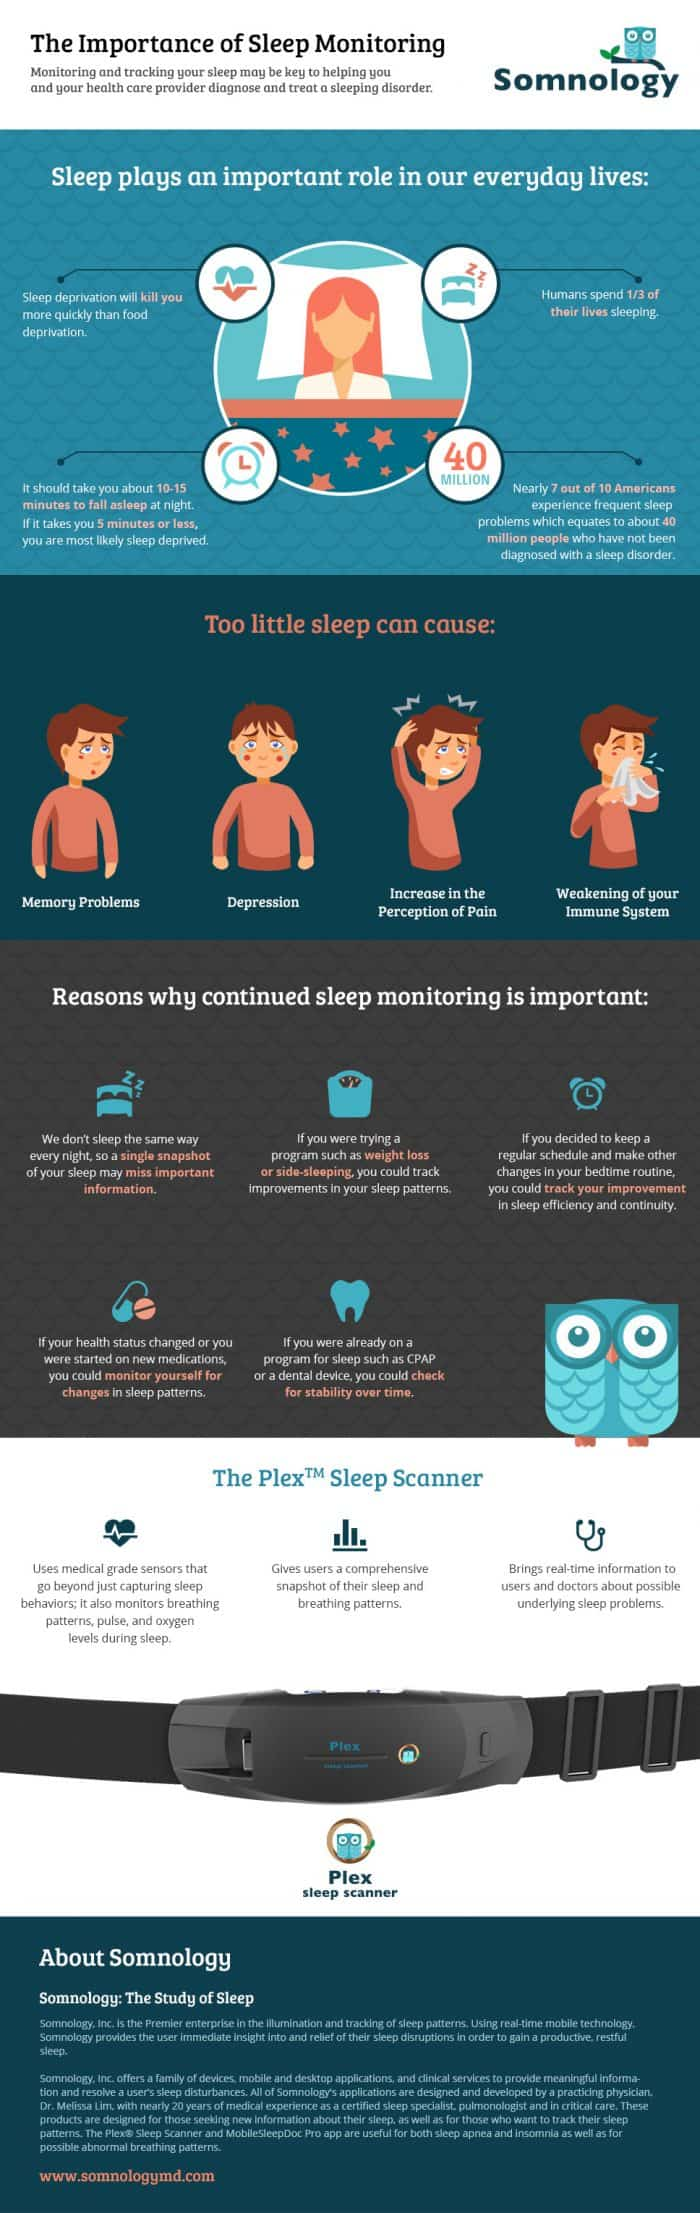 Importance of sleep monitoring infographic